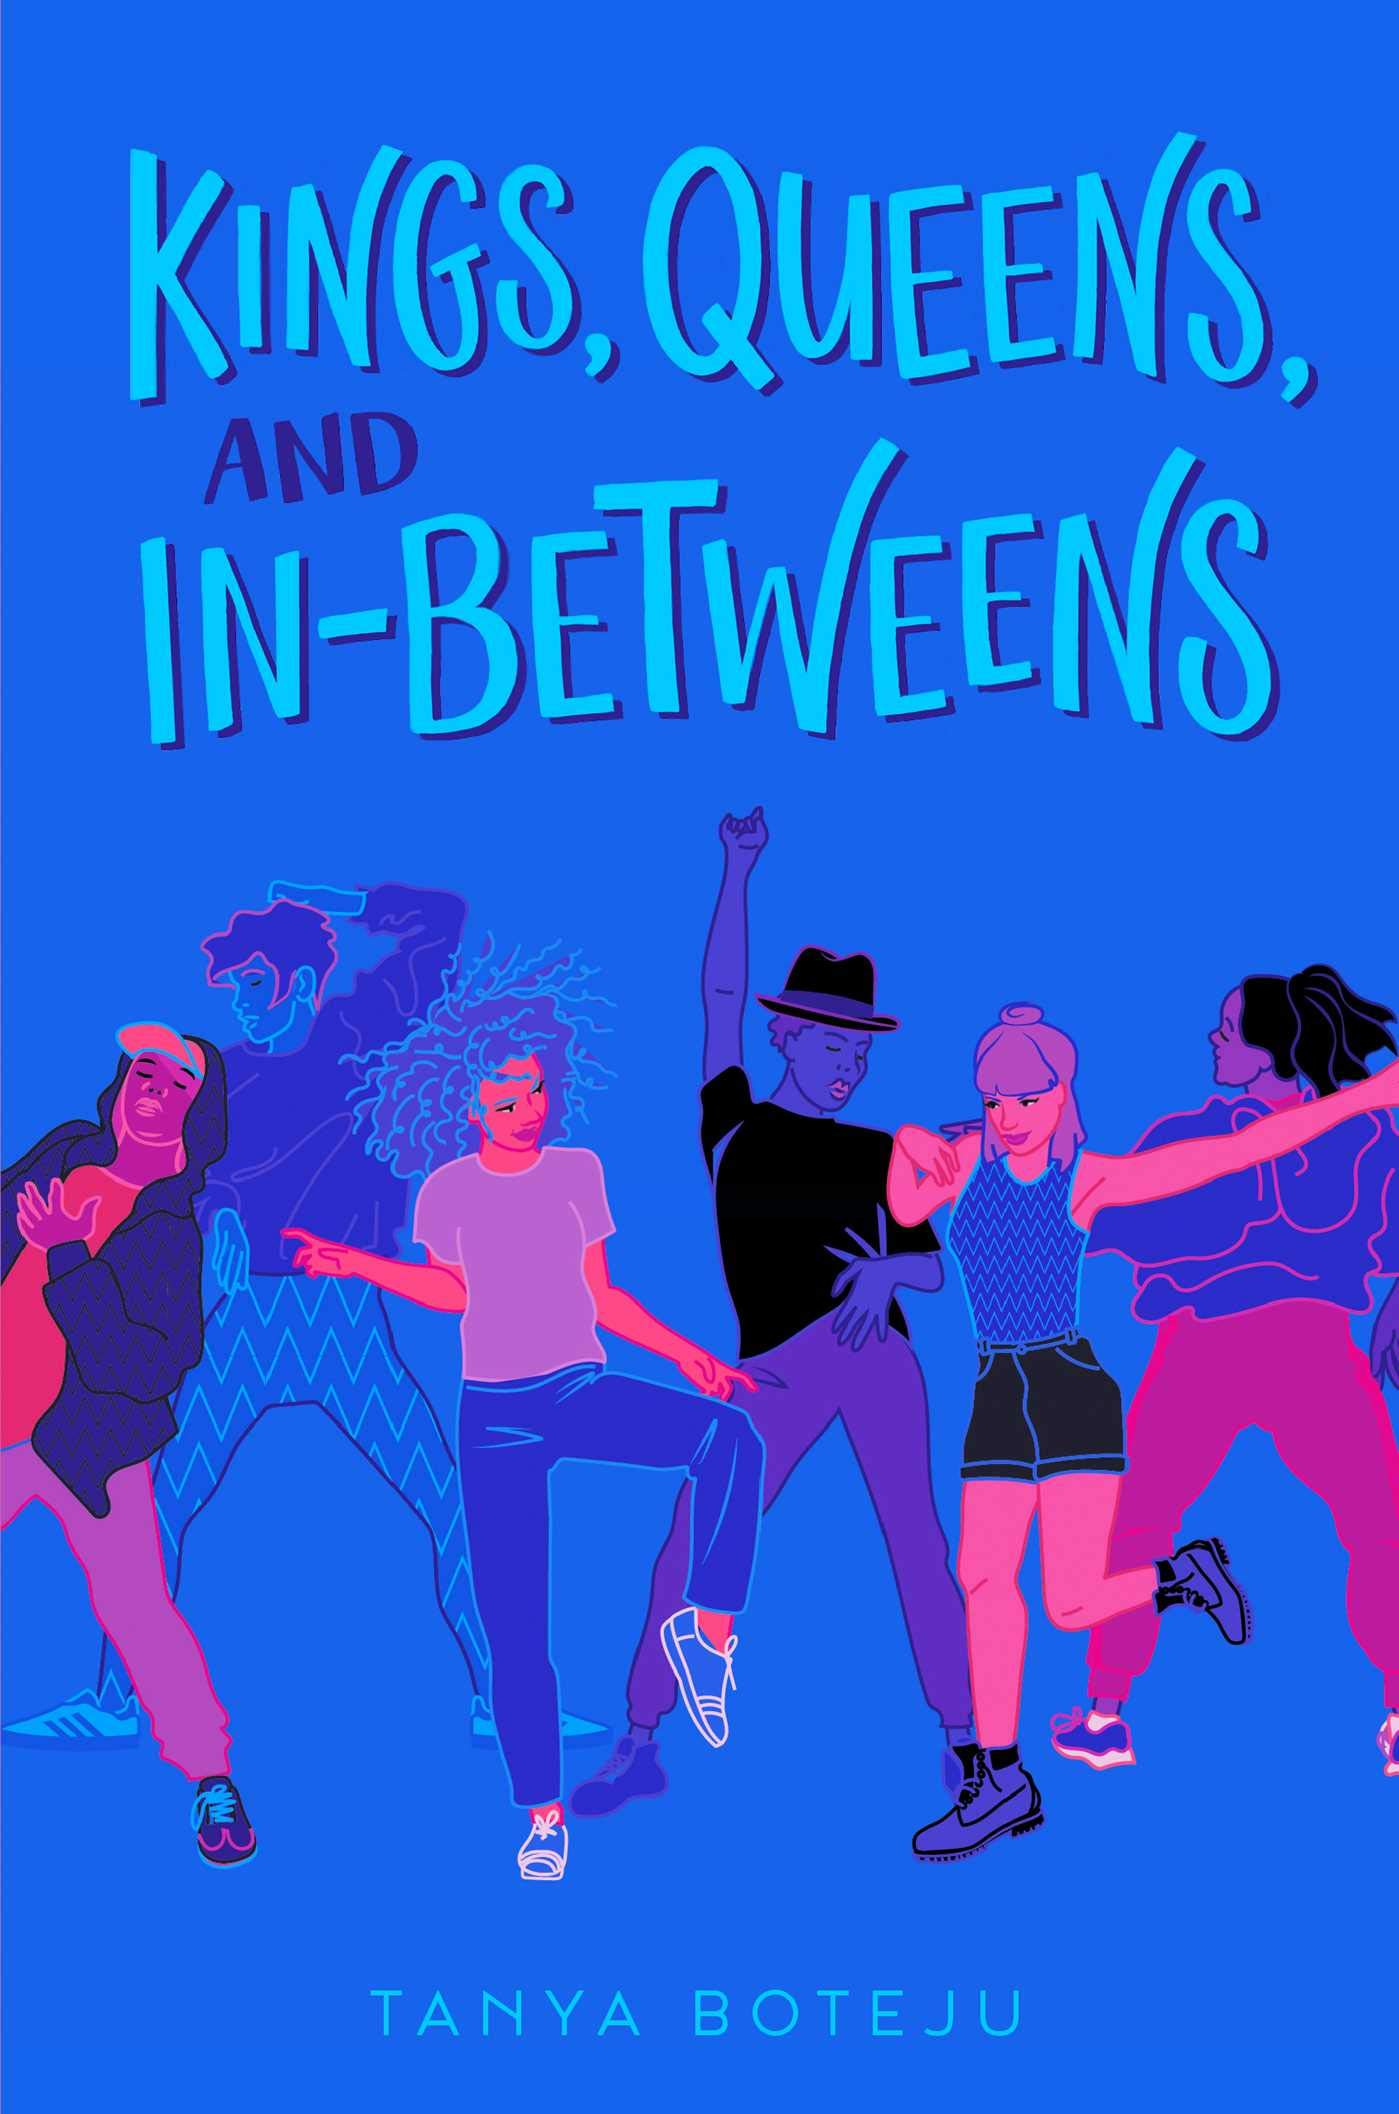 Amazon.com: Kings, Queens, and In-Betweens (9781534430655): Boteju, Tanya:  Books